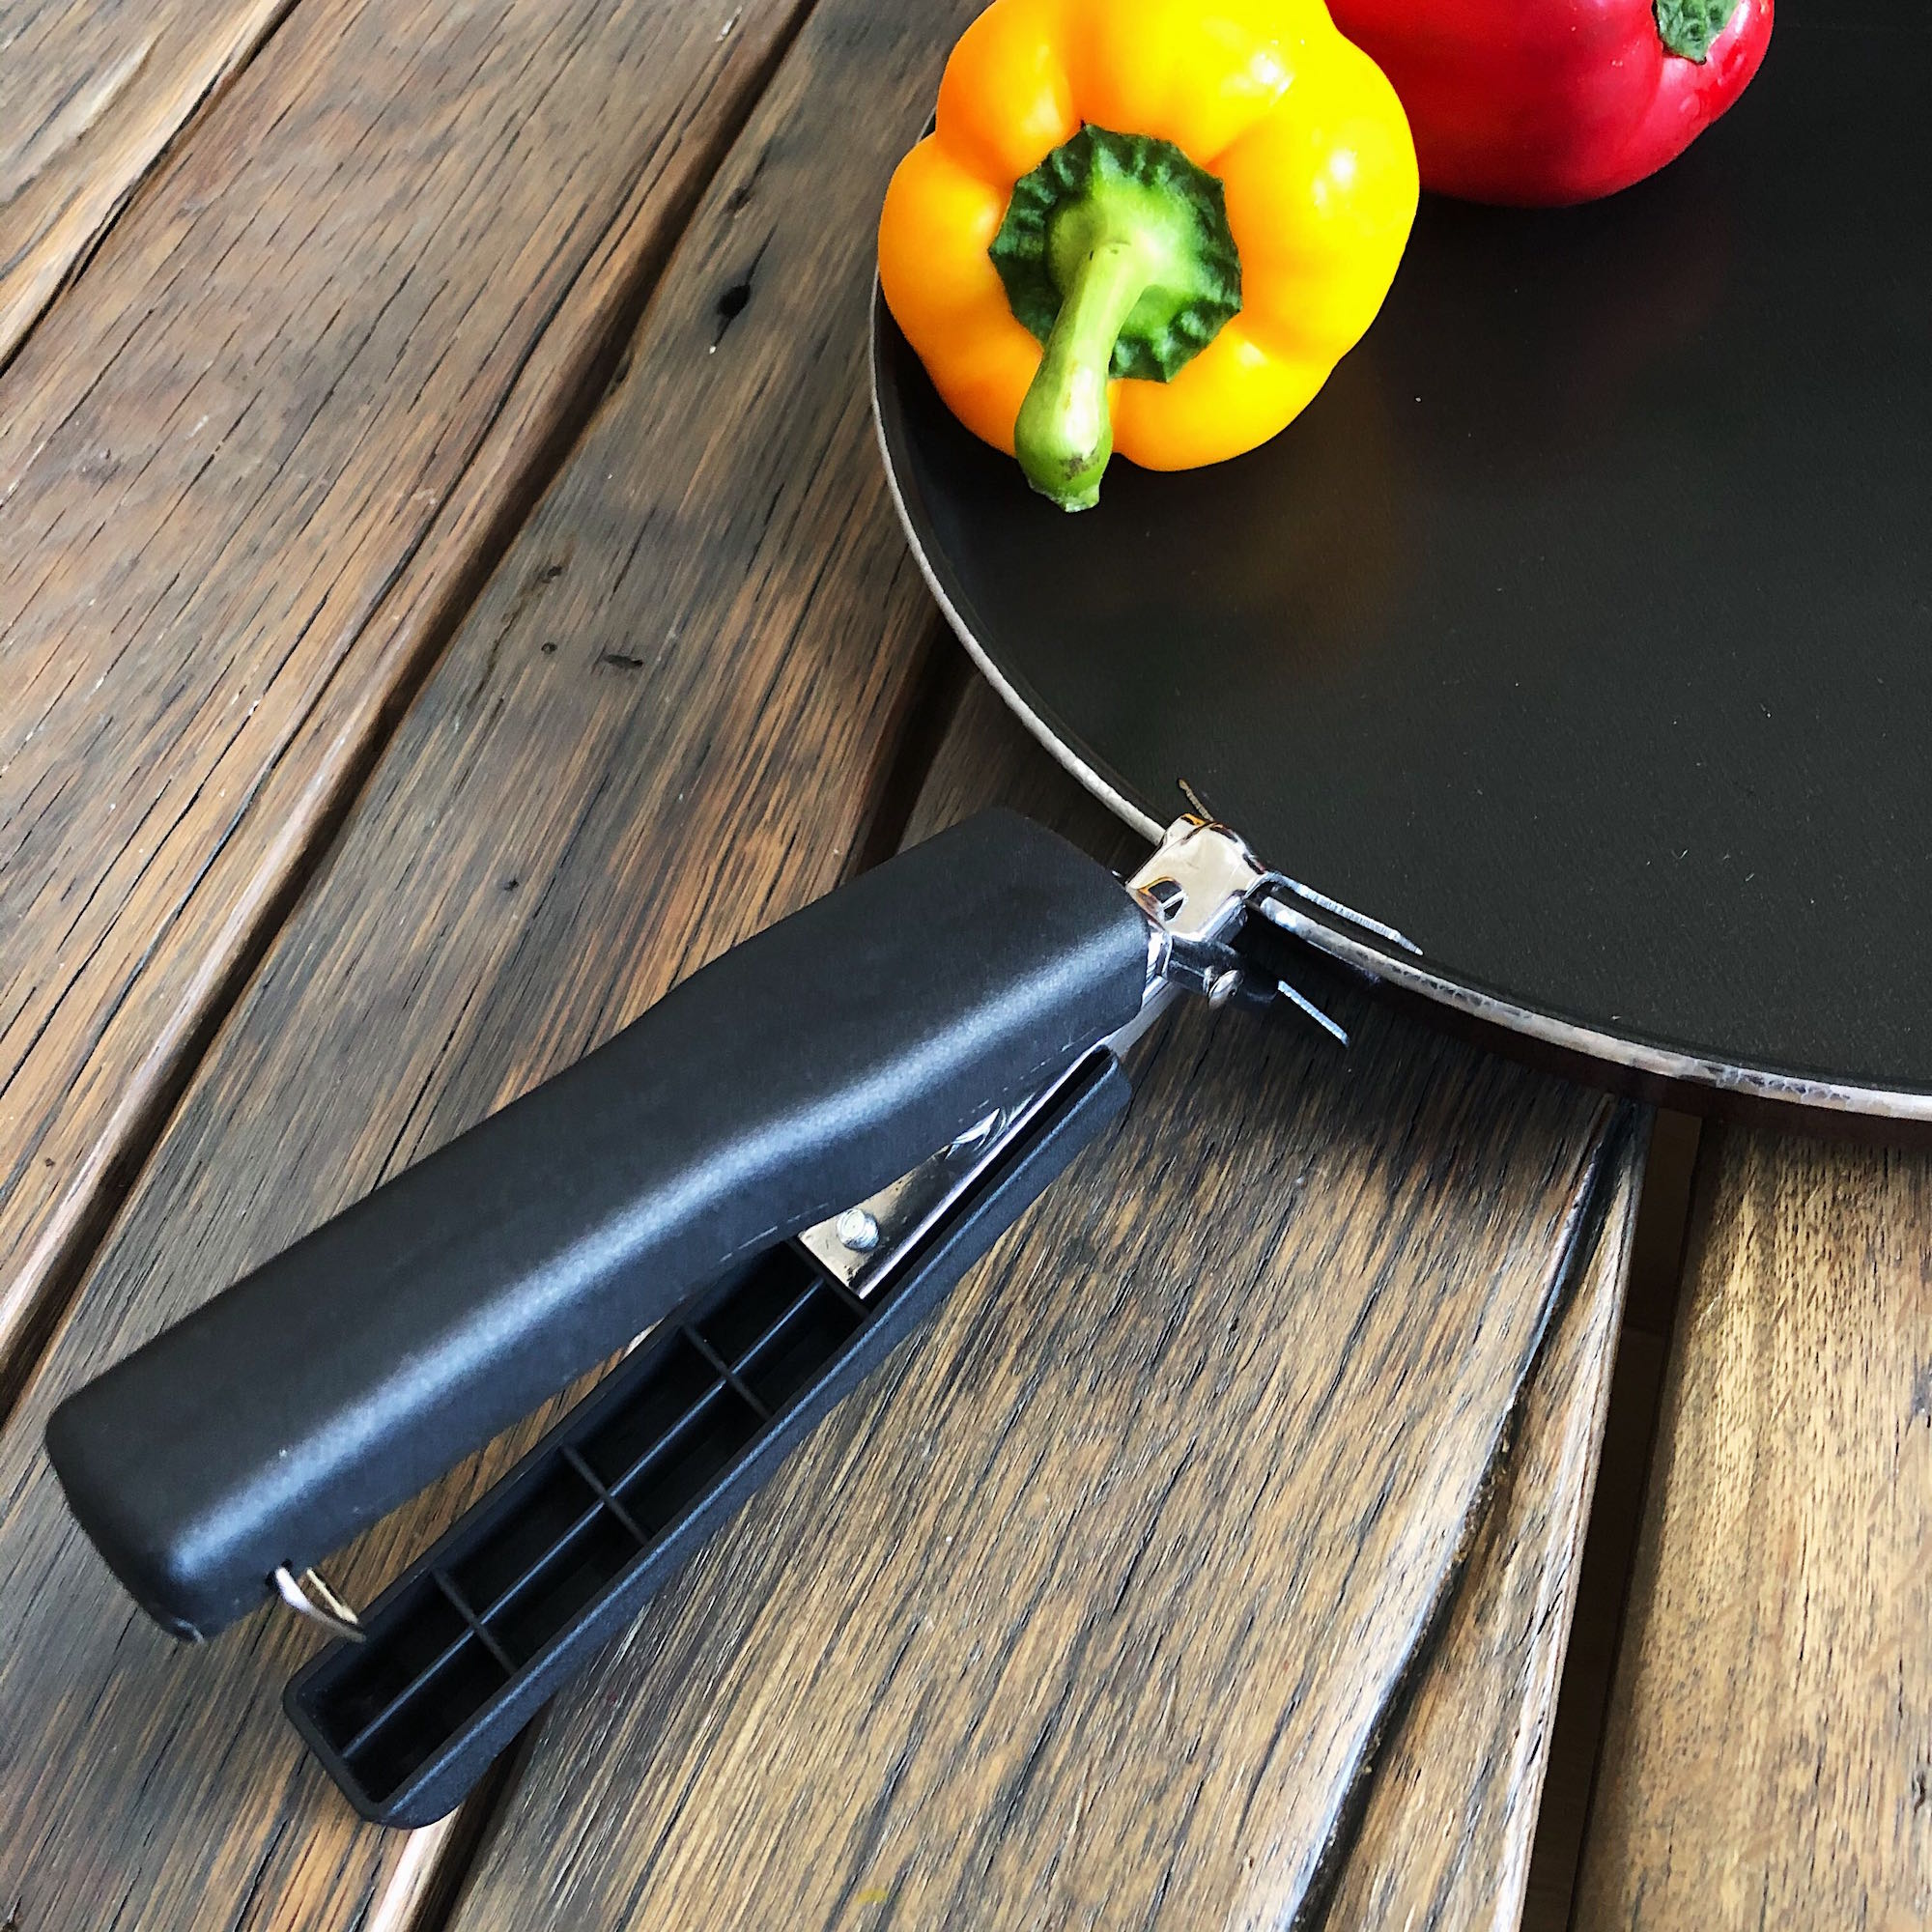 Secure-Grip Stainless Steel & Dish Tongs